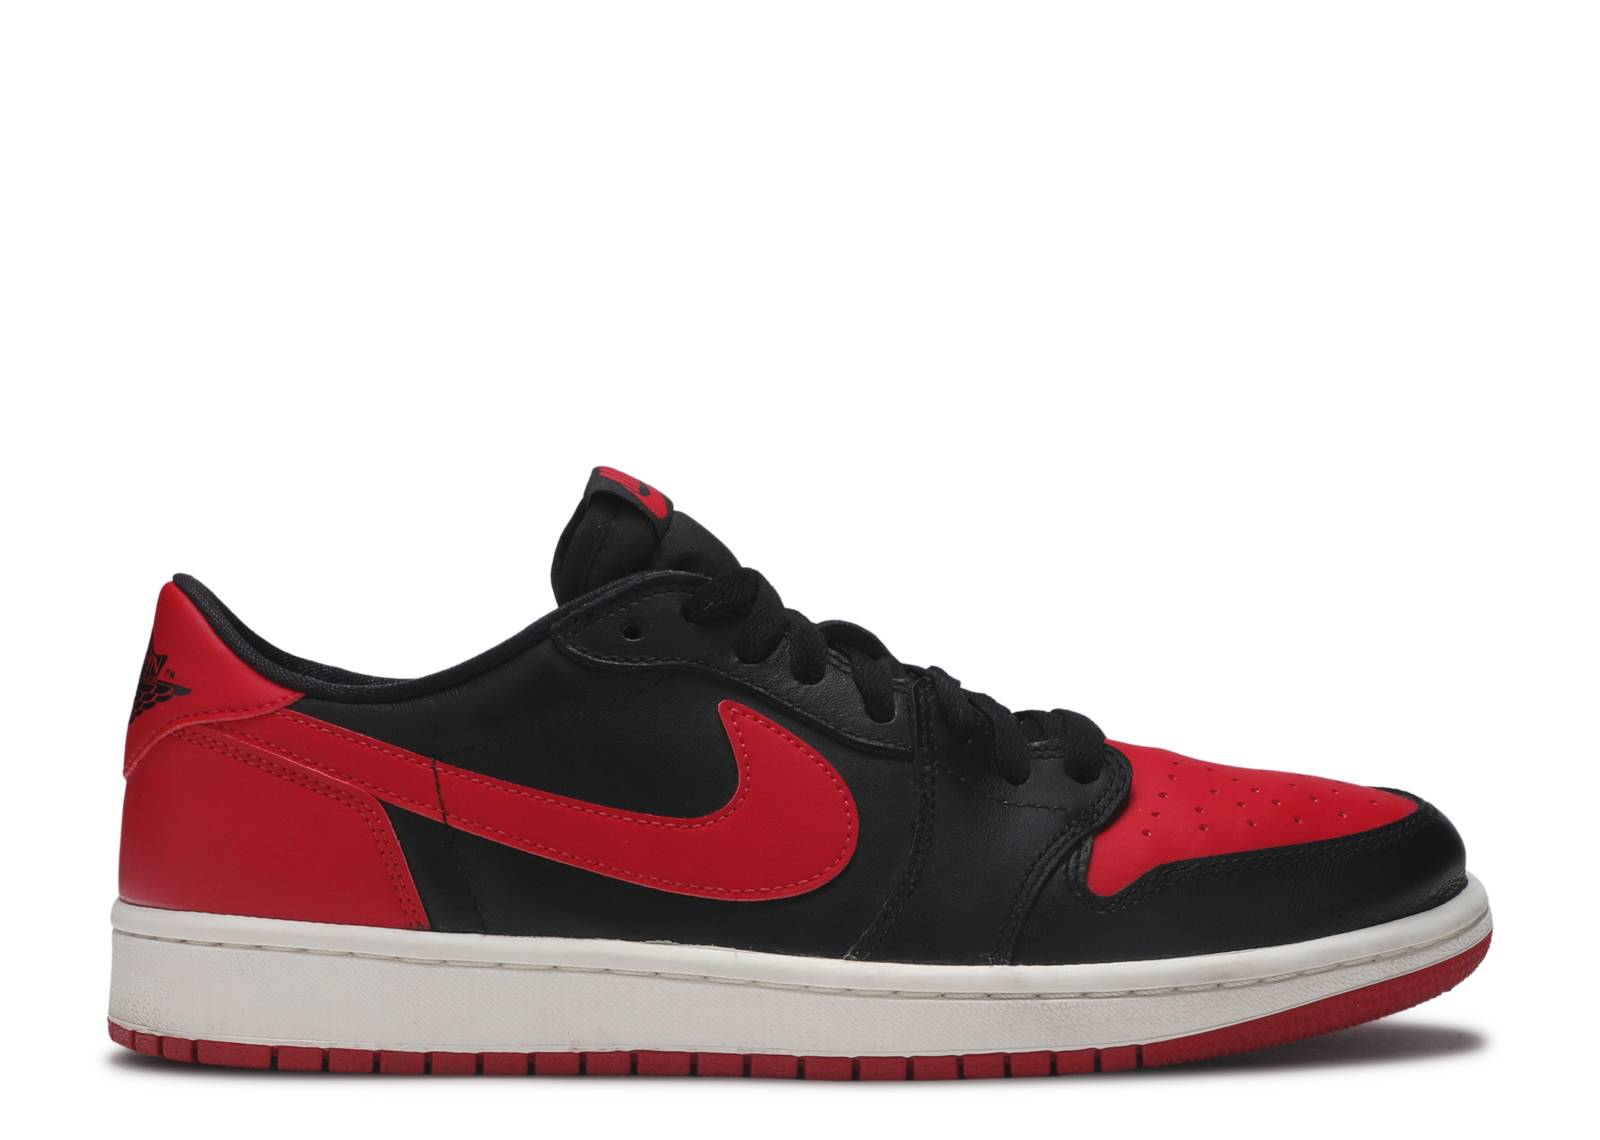 super popular 3b474 8cfc5 air jordan 1 retro low og